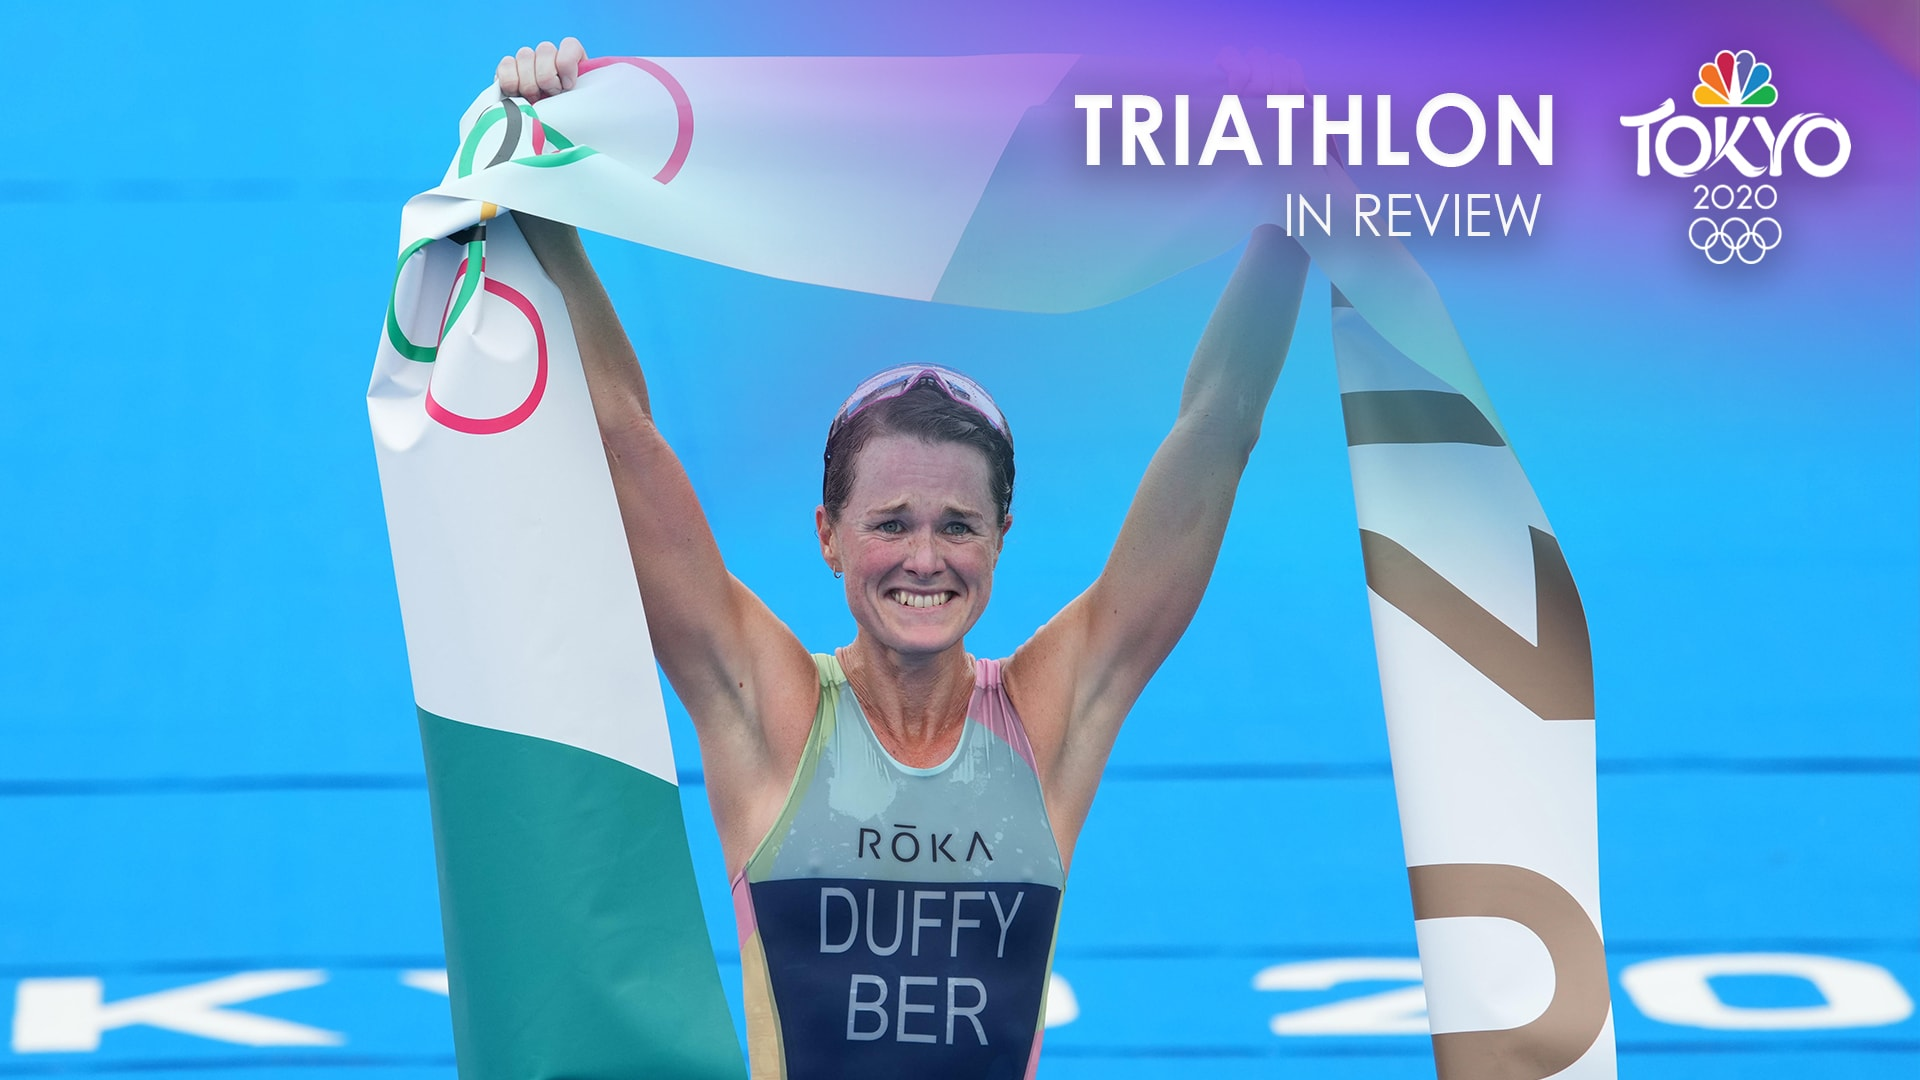 Image for Tokyo Olympics triathlon in review: A year of firsts